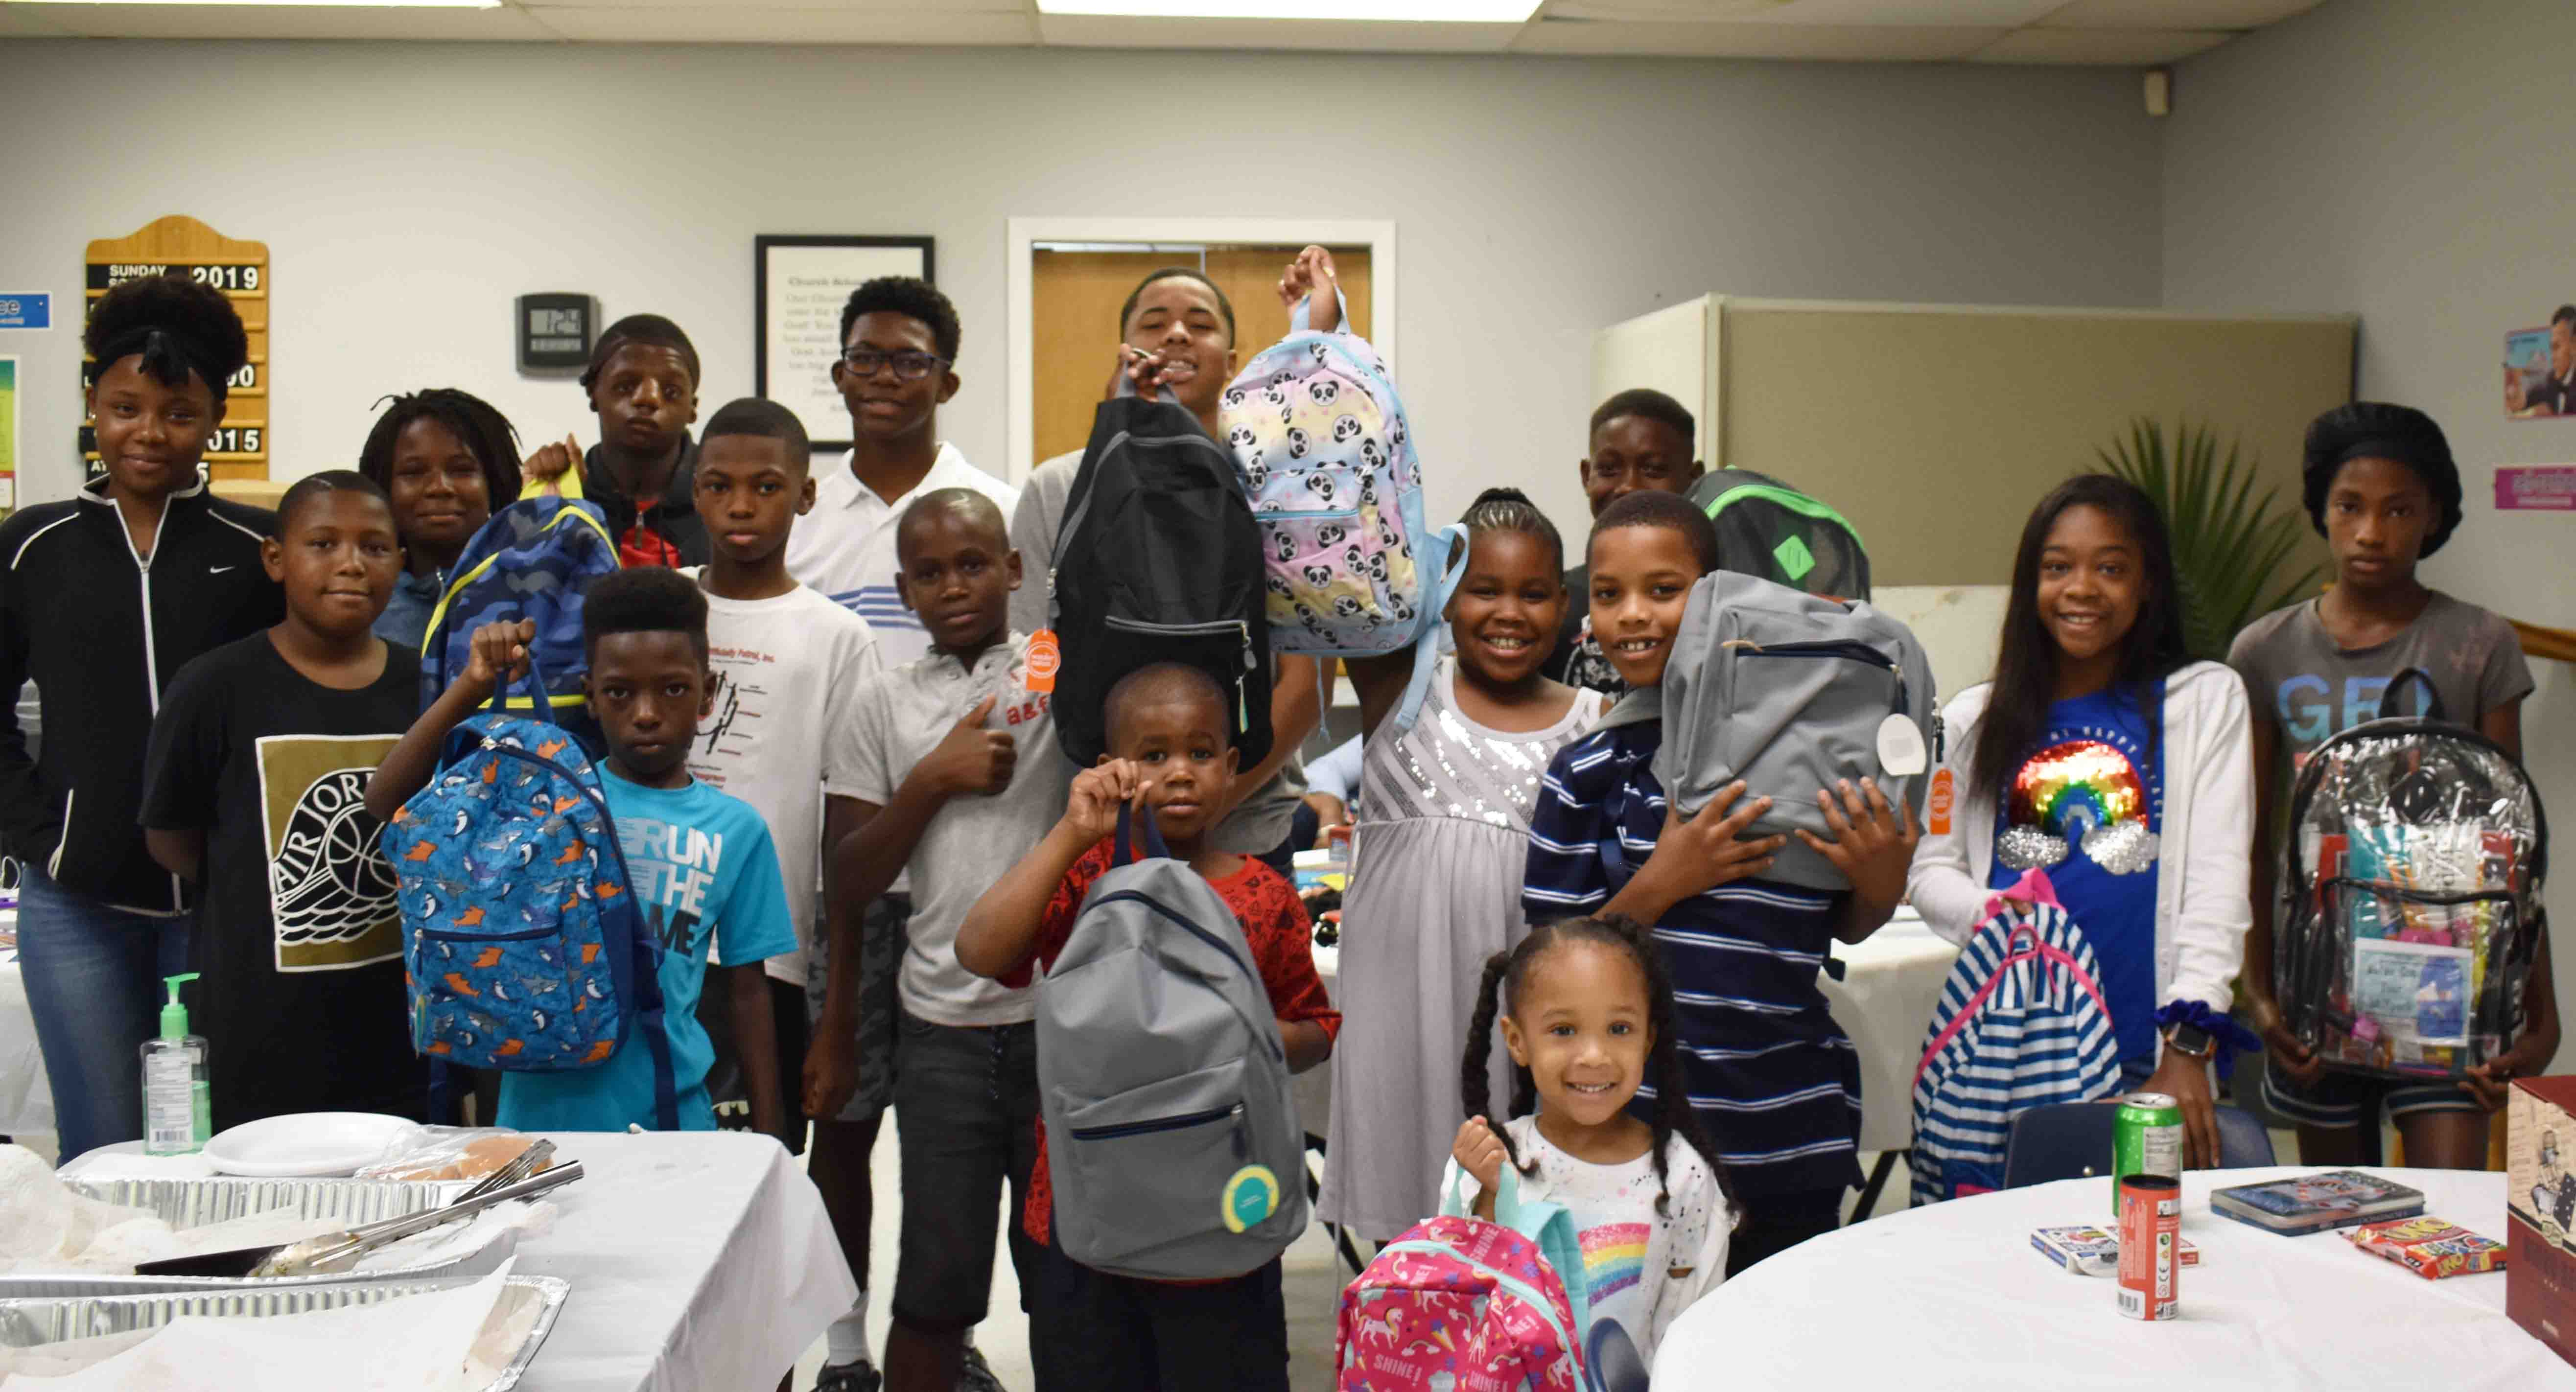 Kiddos received backpacks filled with supplies